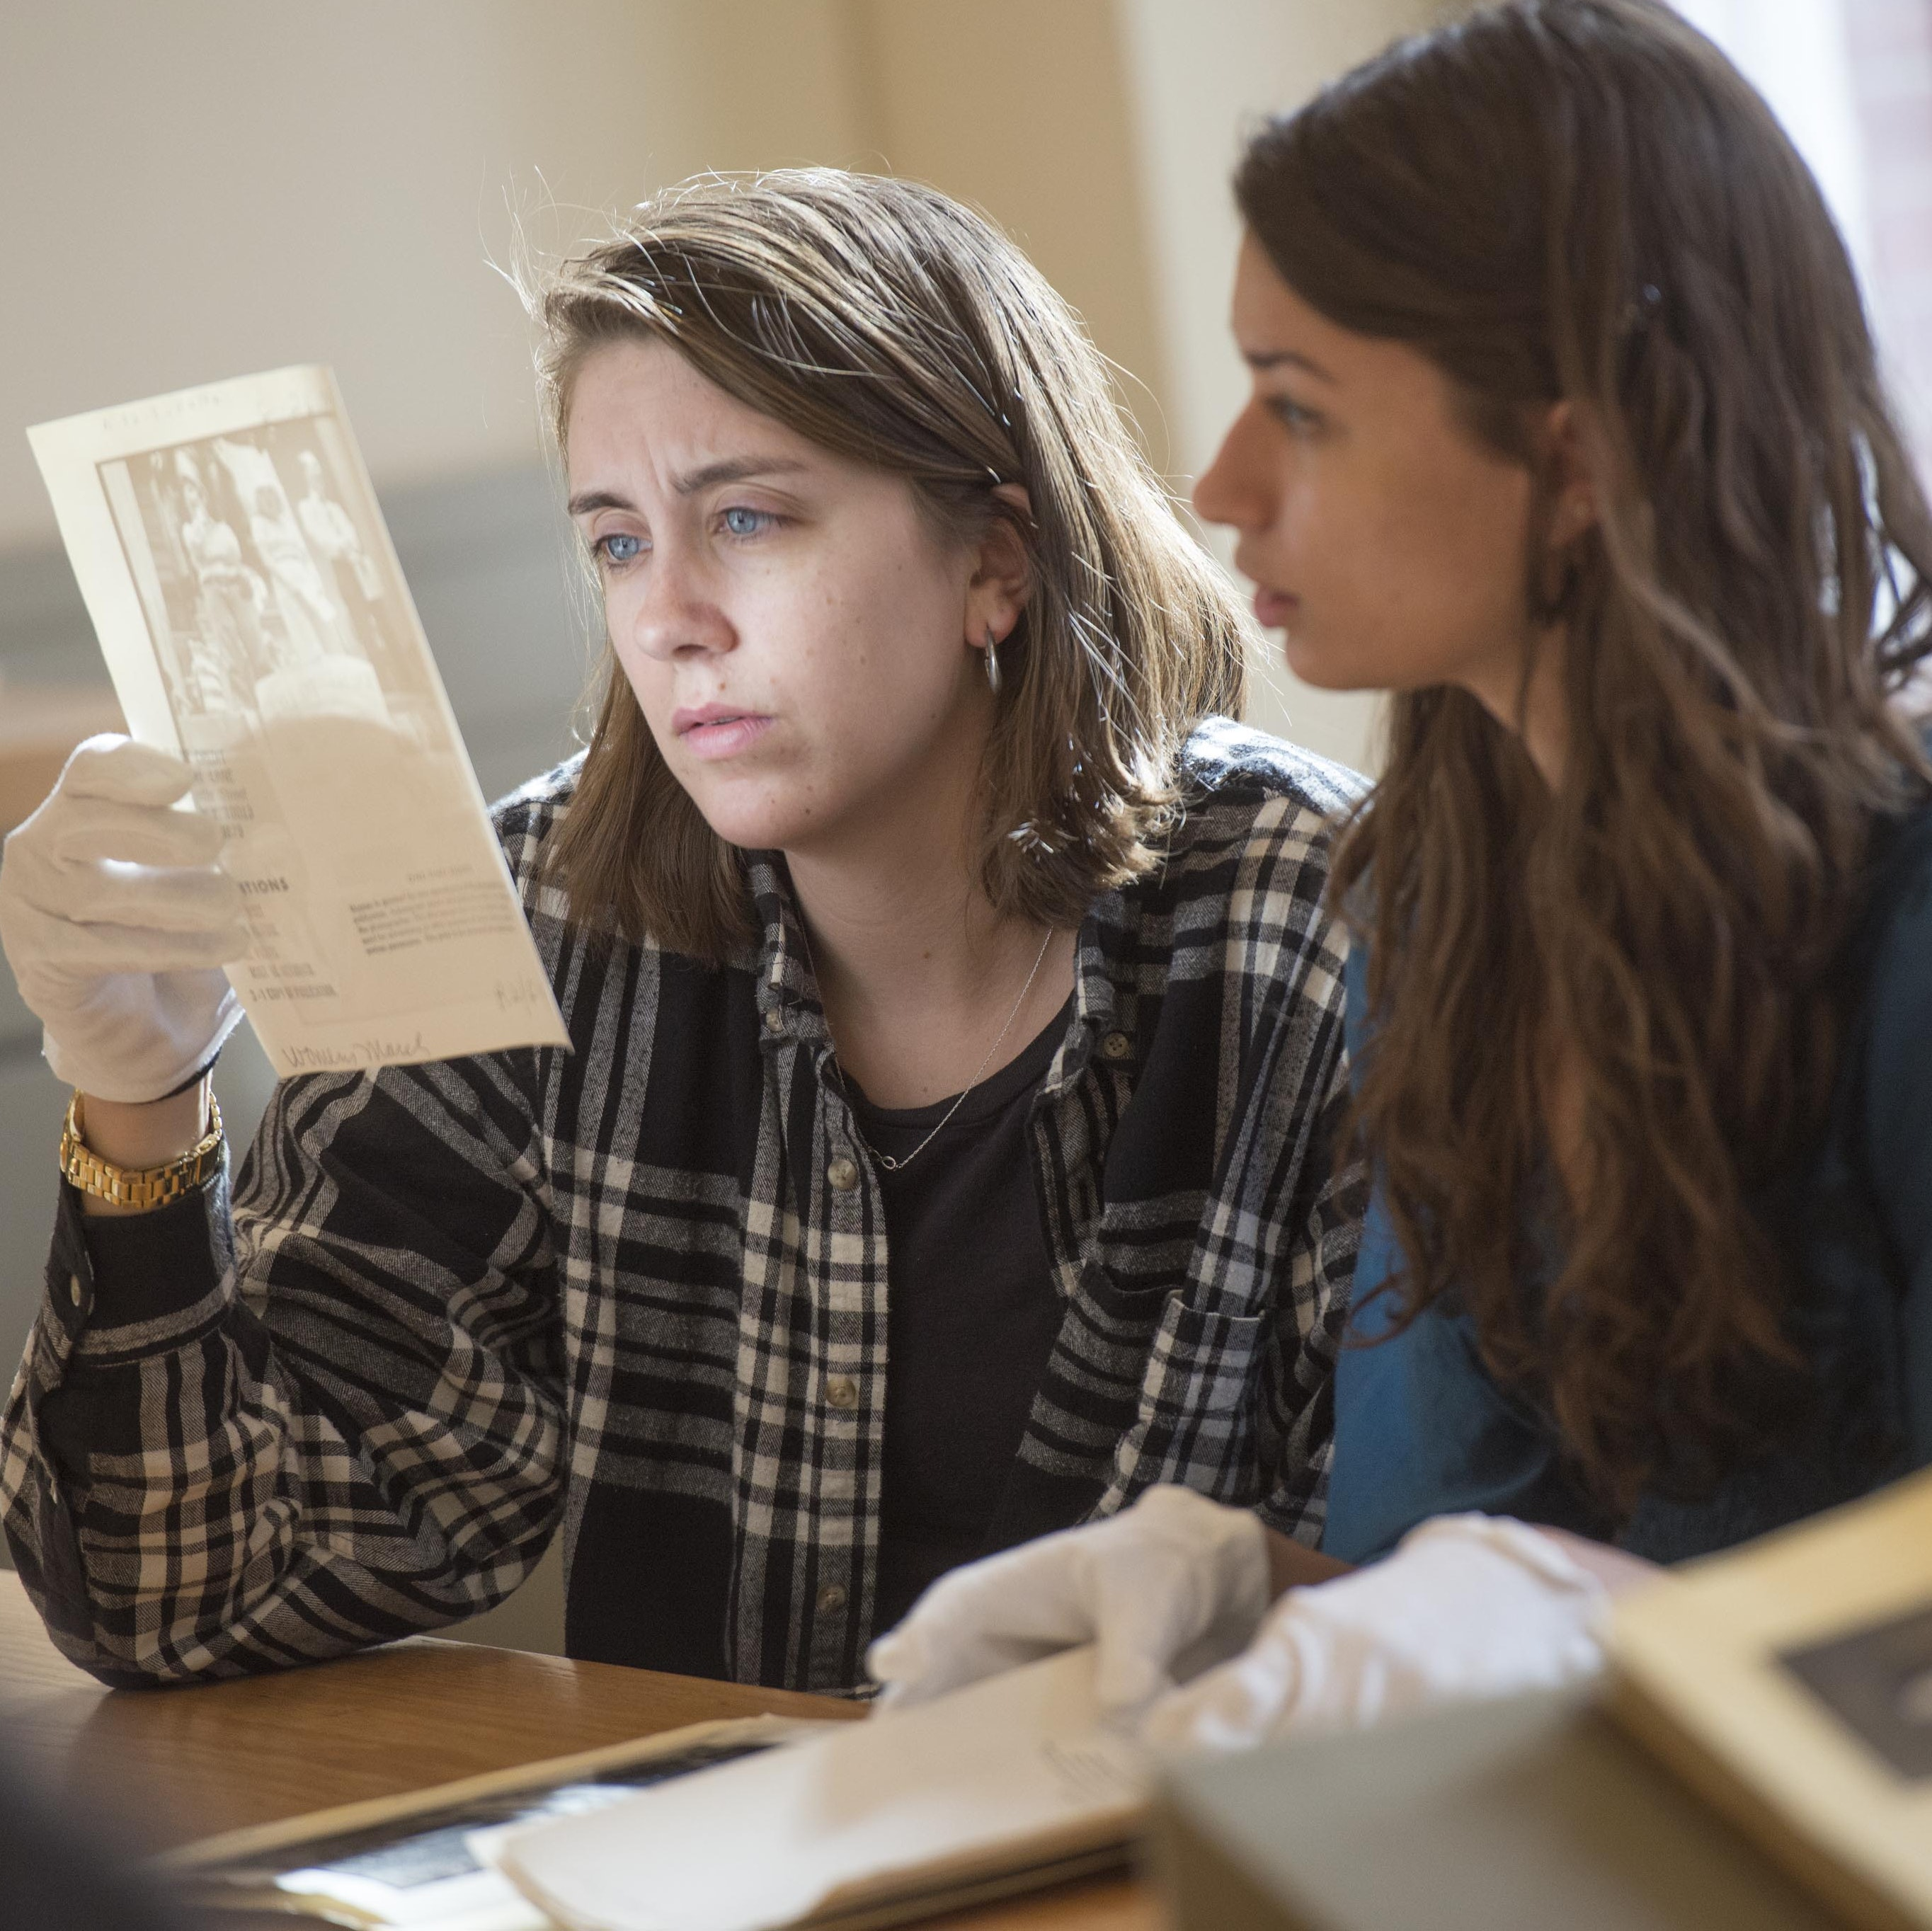 Students gazing at picture during a class taught by Laurel Thatcher Ulrich